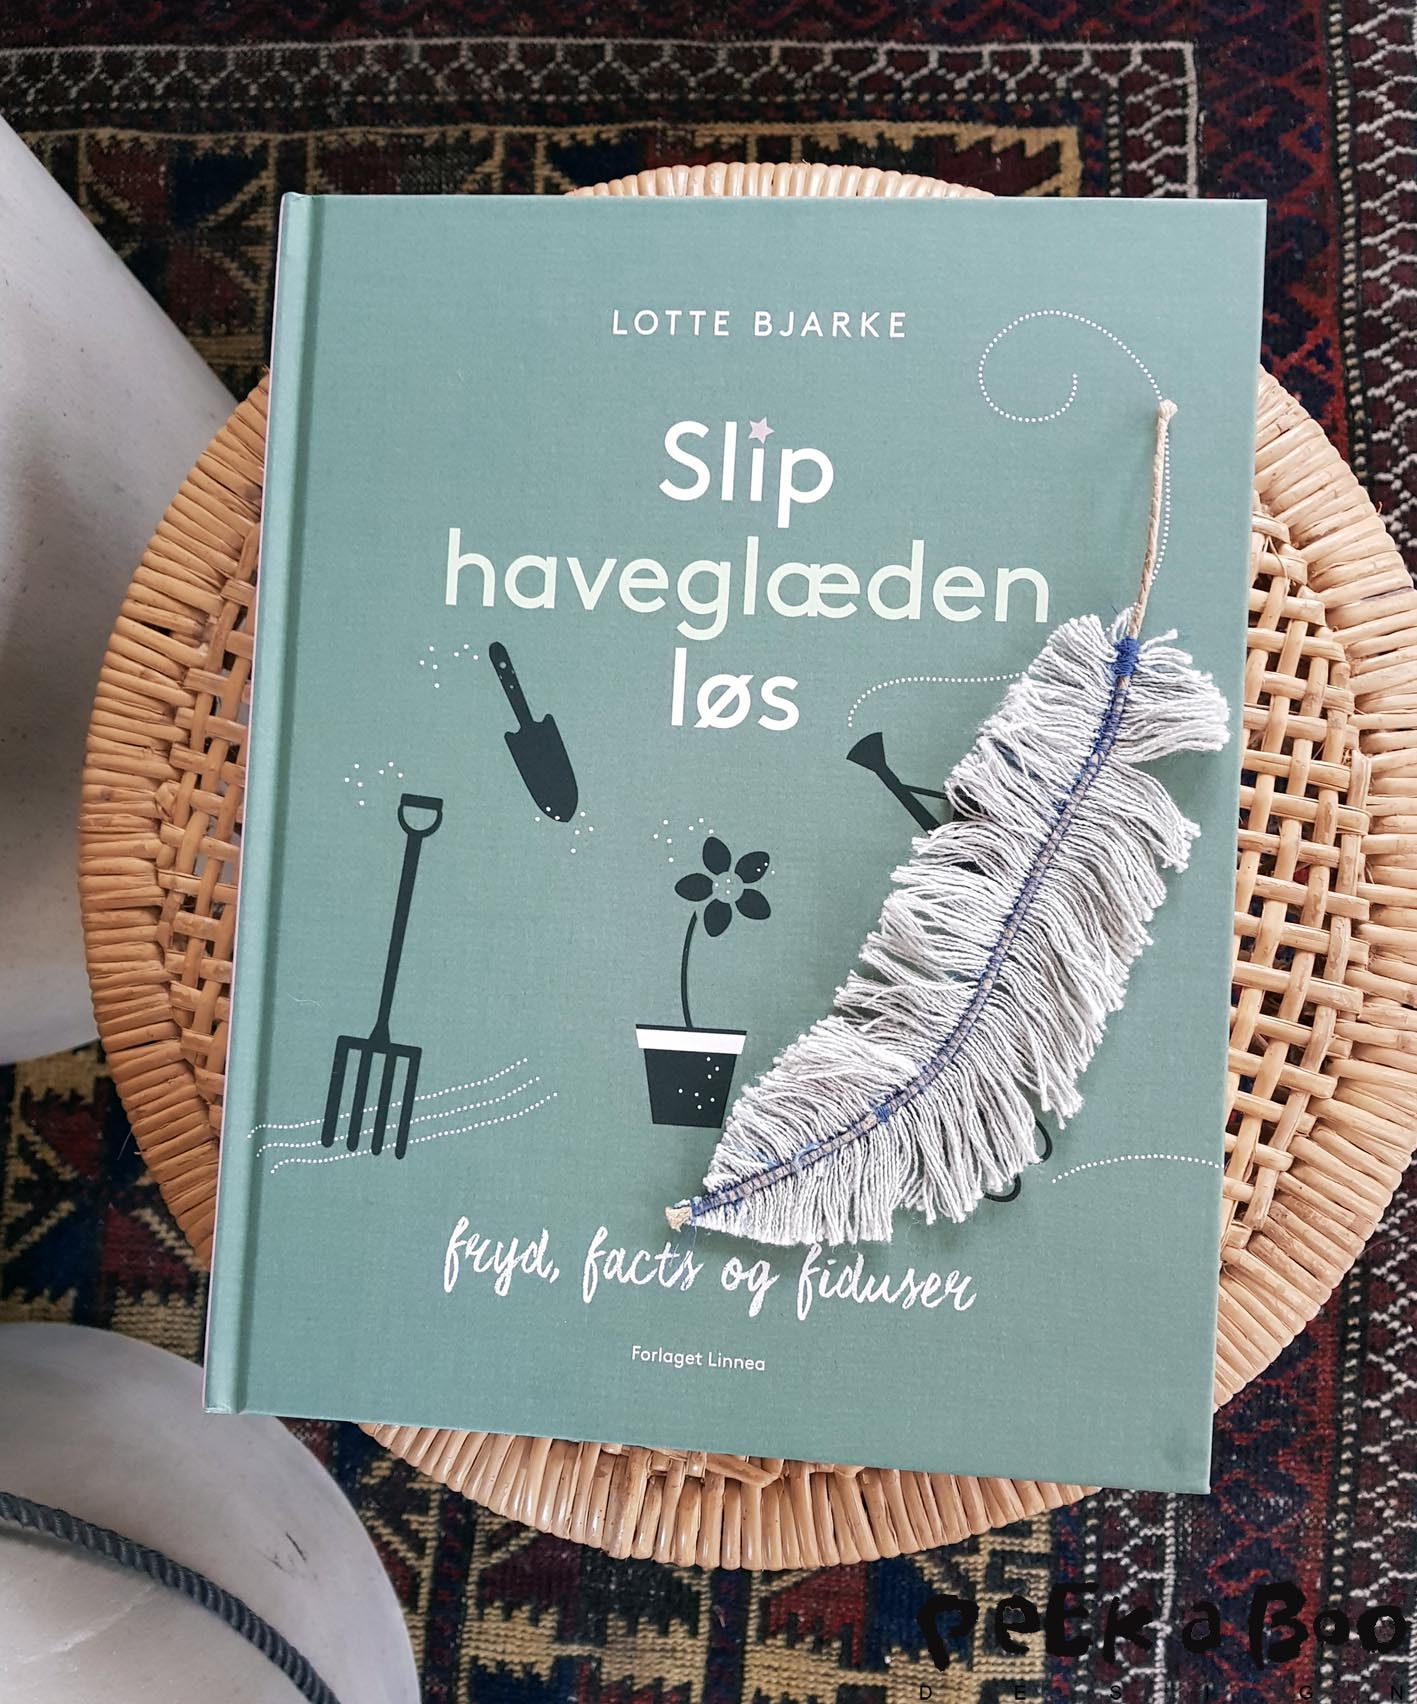 The new garden book from Lotte Bjarke. It is in danish and filled with inspiring photos.